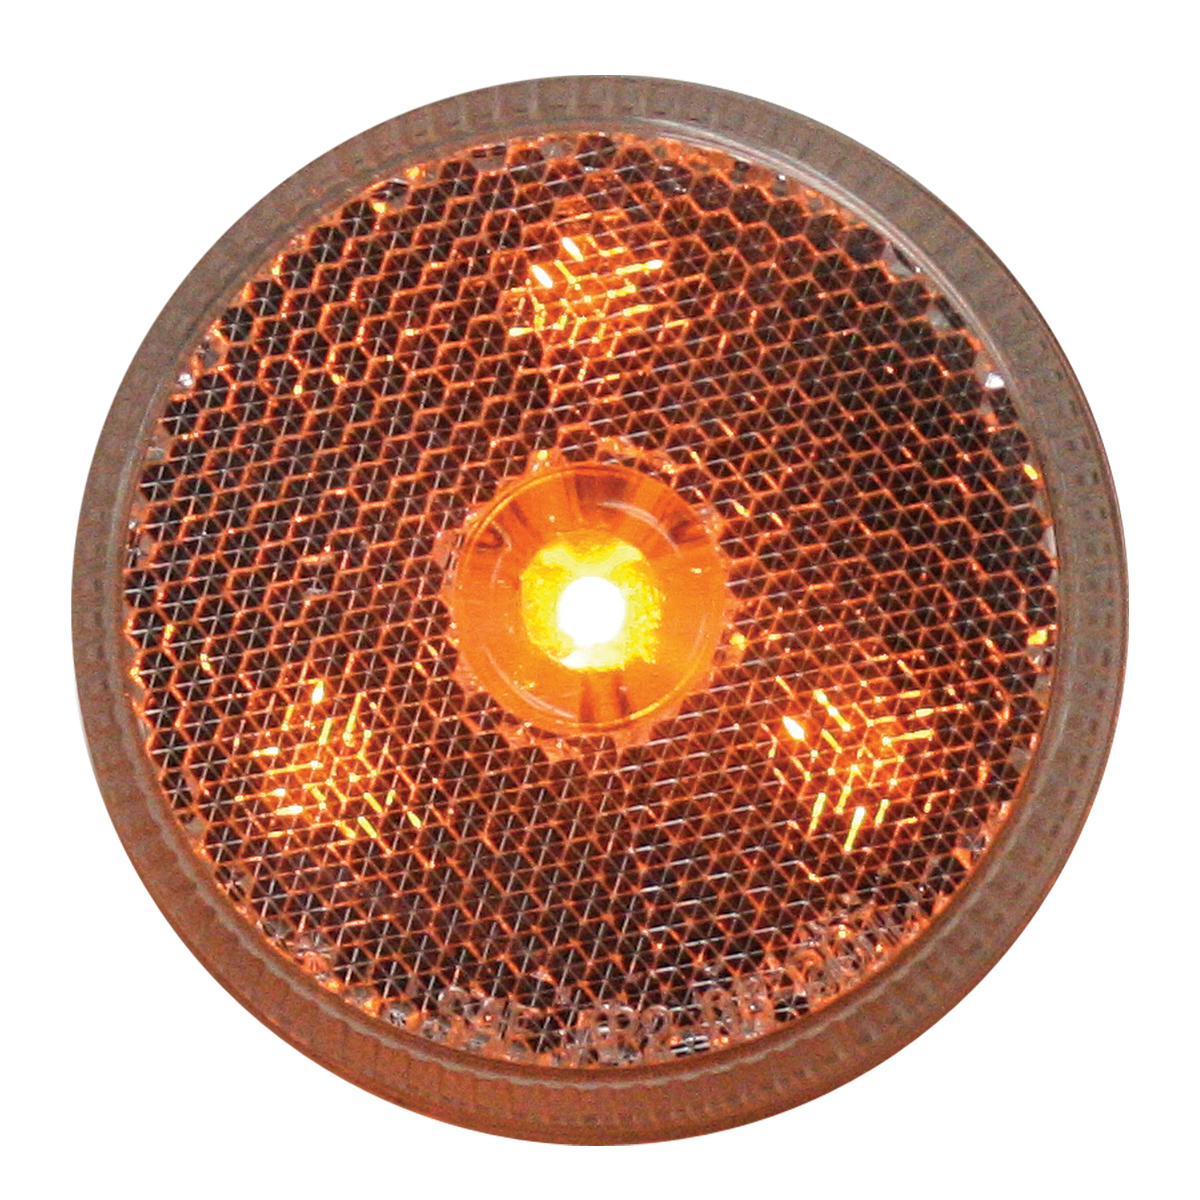 "76971 2.5"" Reflector Style LED Maker Light in Amber/Clear"